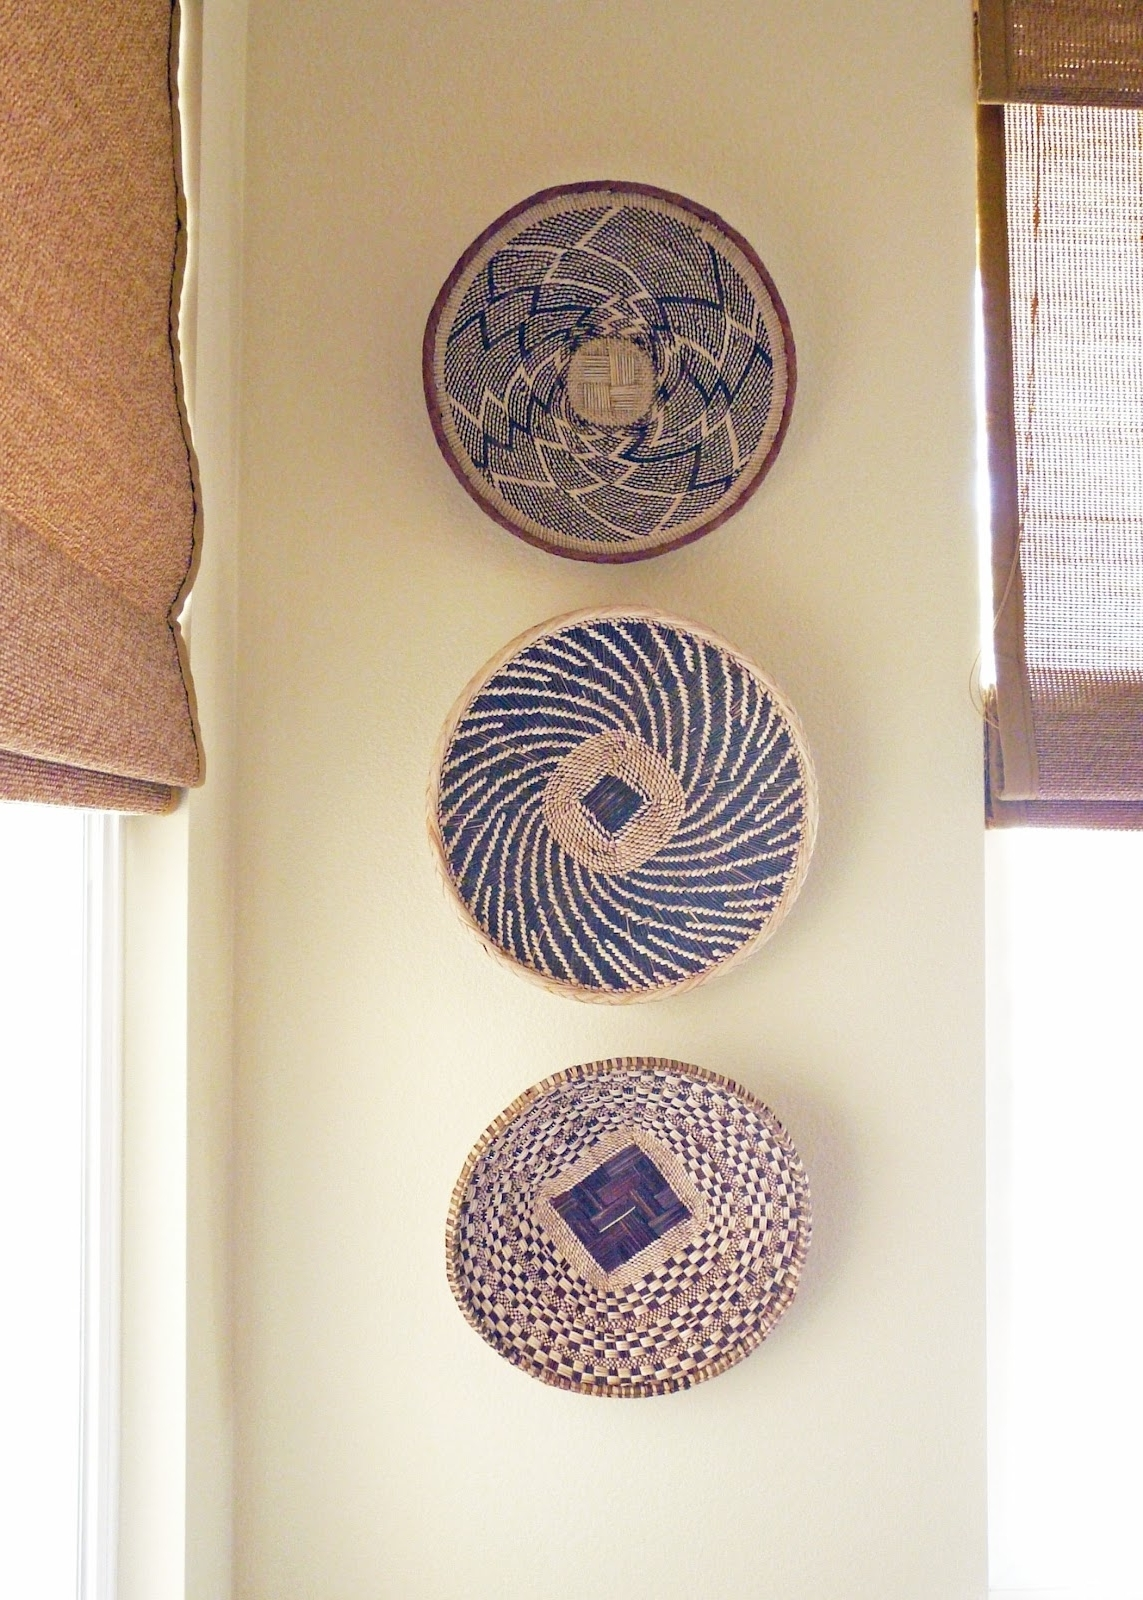 [%Home] African Basket Wall Decor inside Preferred Woven Basket Wall Art|Woven Basket Wall Art inside Newest Home] African Basket Wall Decor|Best and Newest Woven Basket Wall Art with regard to Home] African Basket Wall Decor|Best and Newest Home] African Basket Wall Decor for Woven Basket Wall Art%]